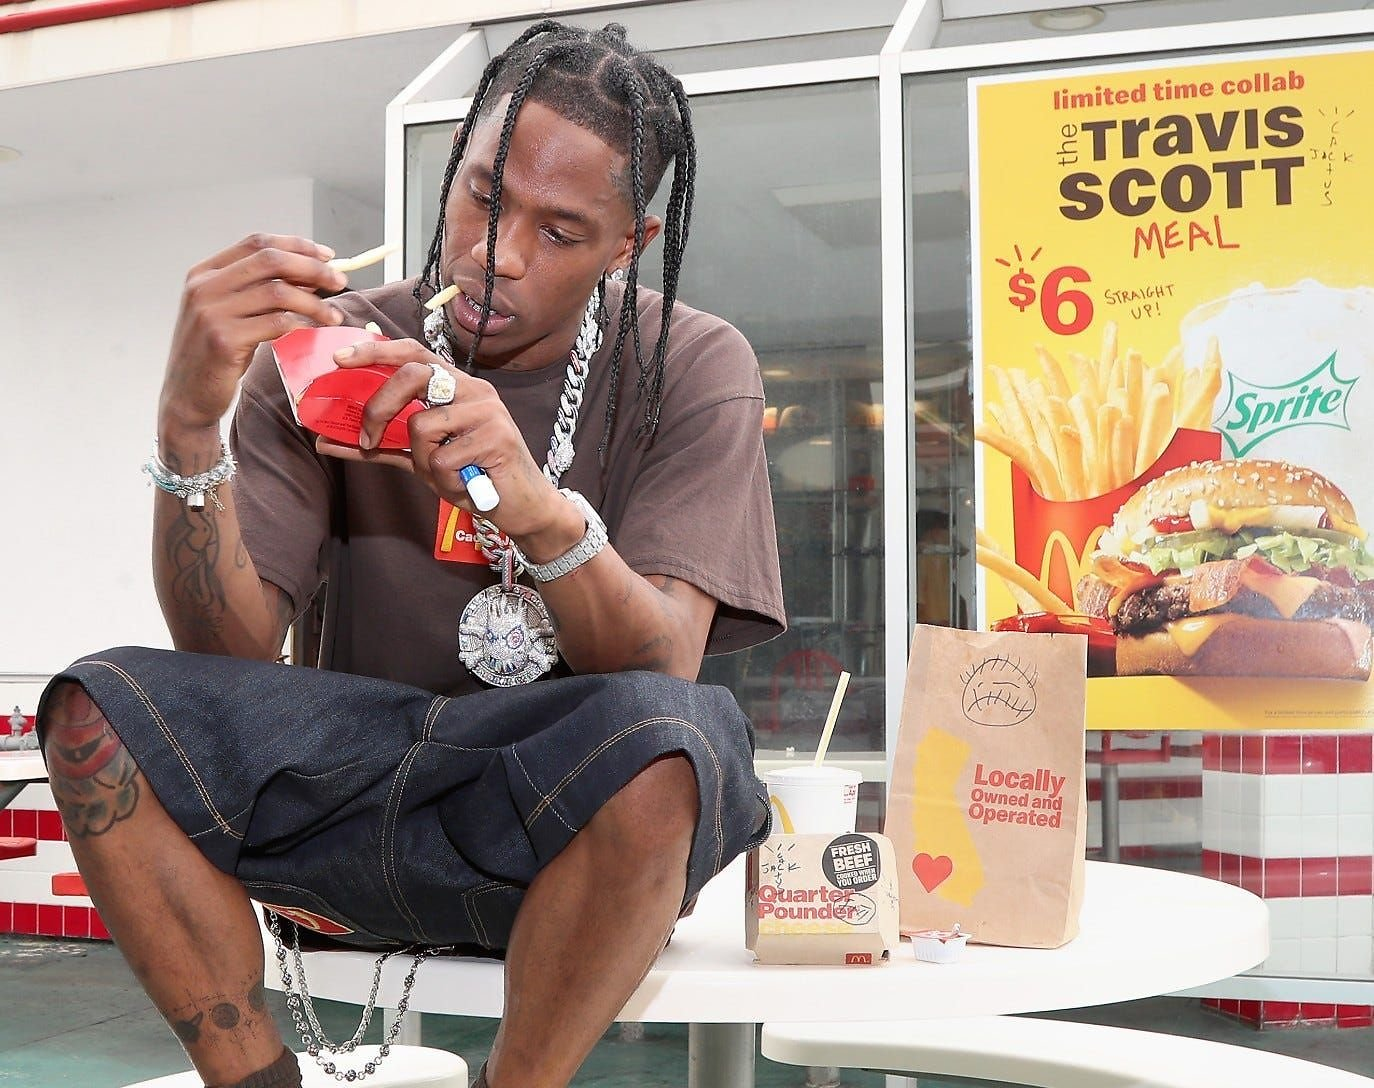 McDonald's Travis Scott Meal Proves to Be More Popular Than Expected, Leading to Shortages and Upcoming Change